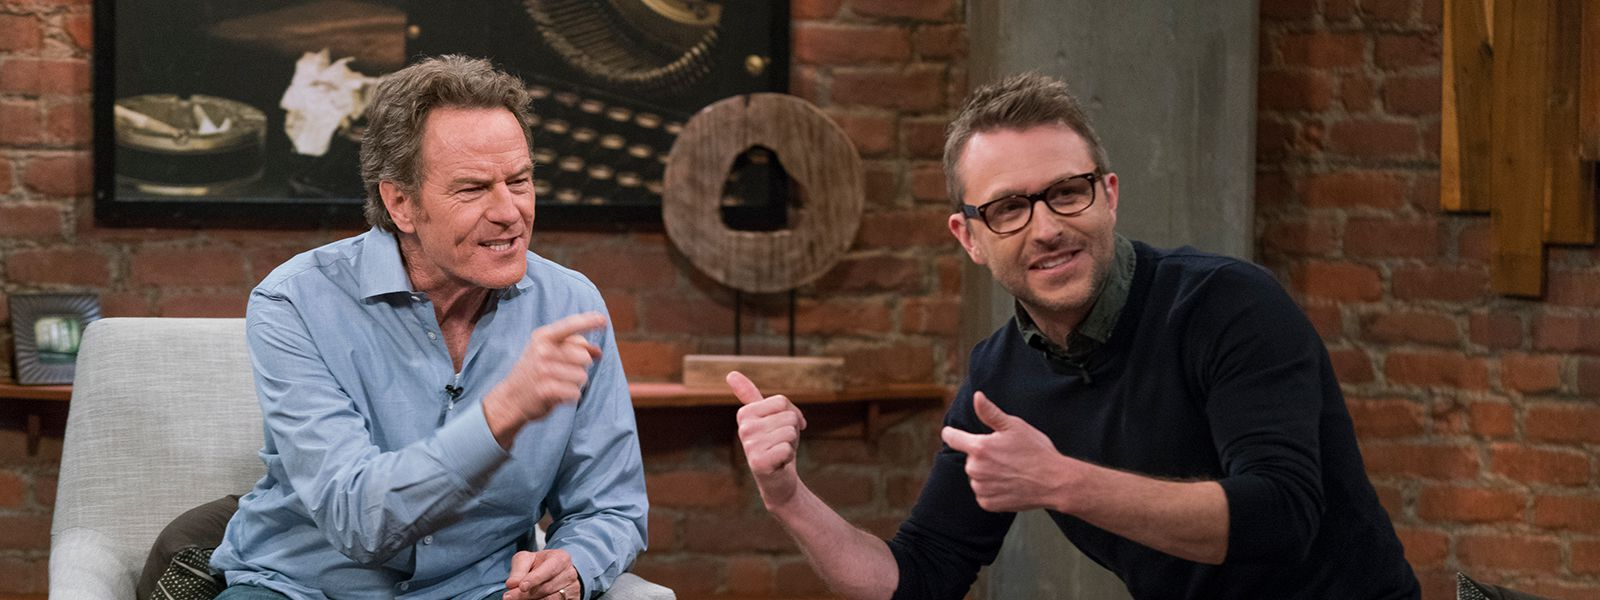 talking-with-chris-hardwick-episode-111-bryan-cranston-chris-hardwick-800×600